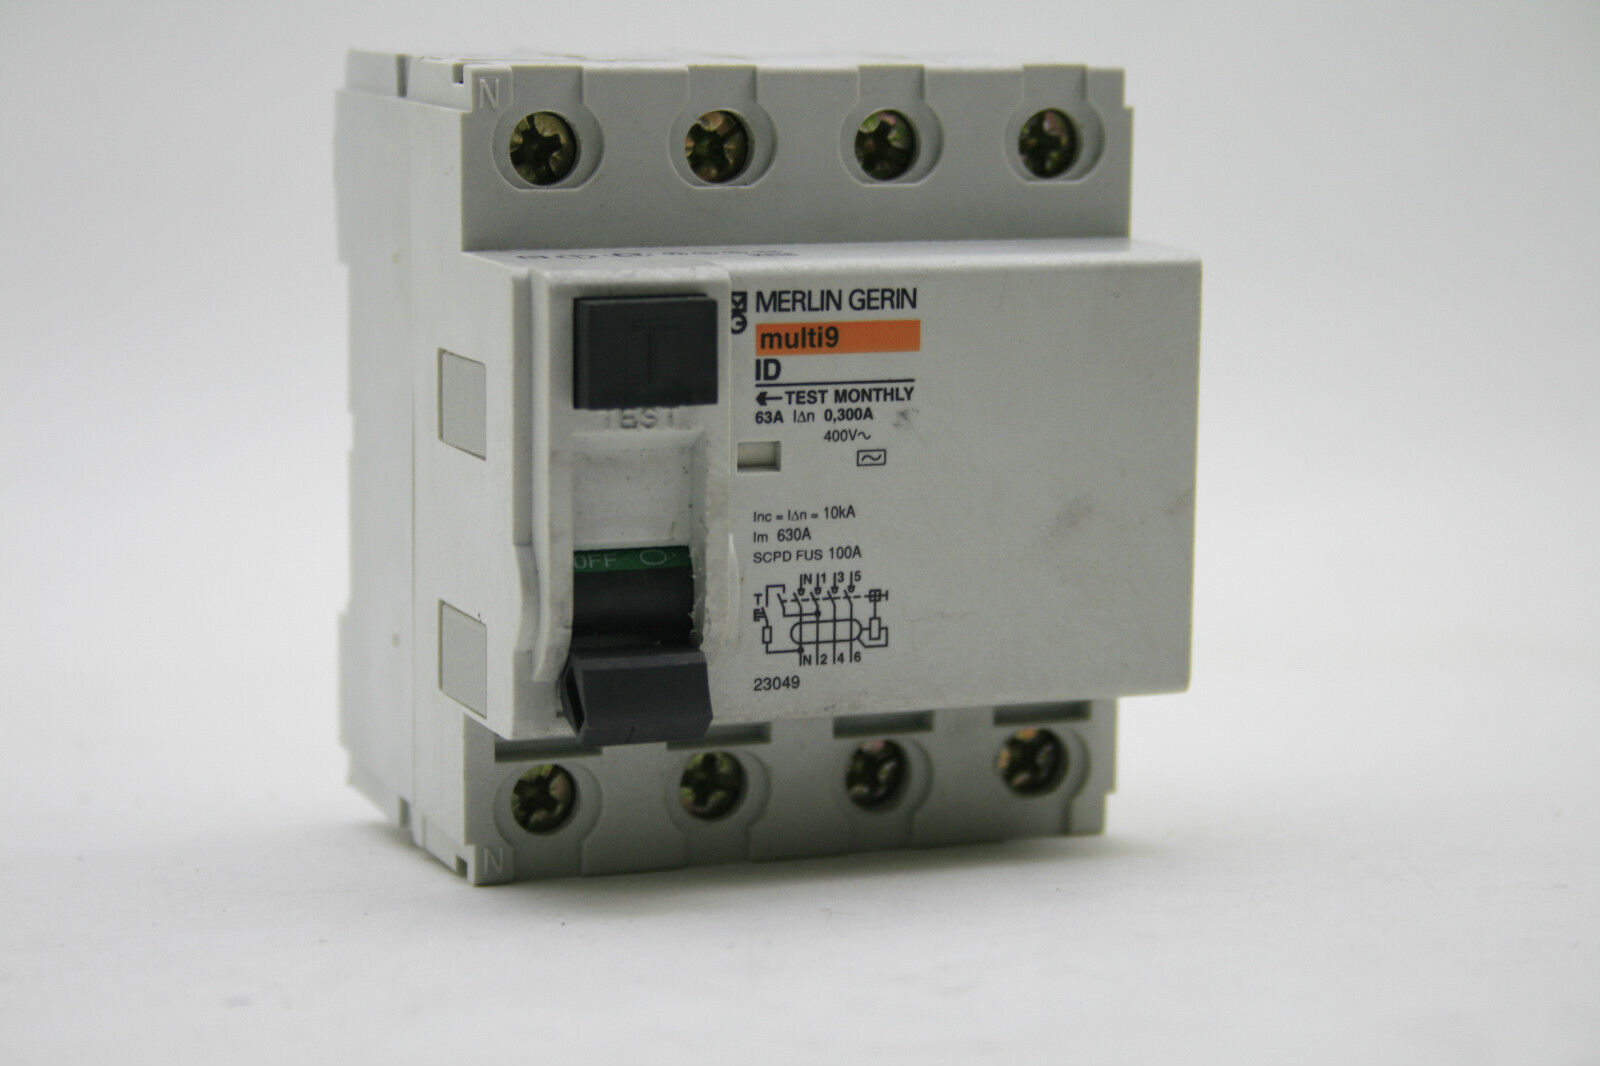 diferencial 4p 63a instantaneous rcd 300ma multi9 merlin